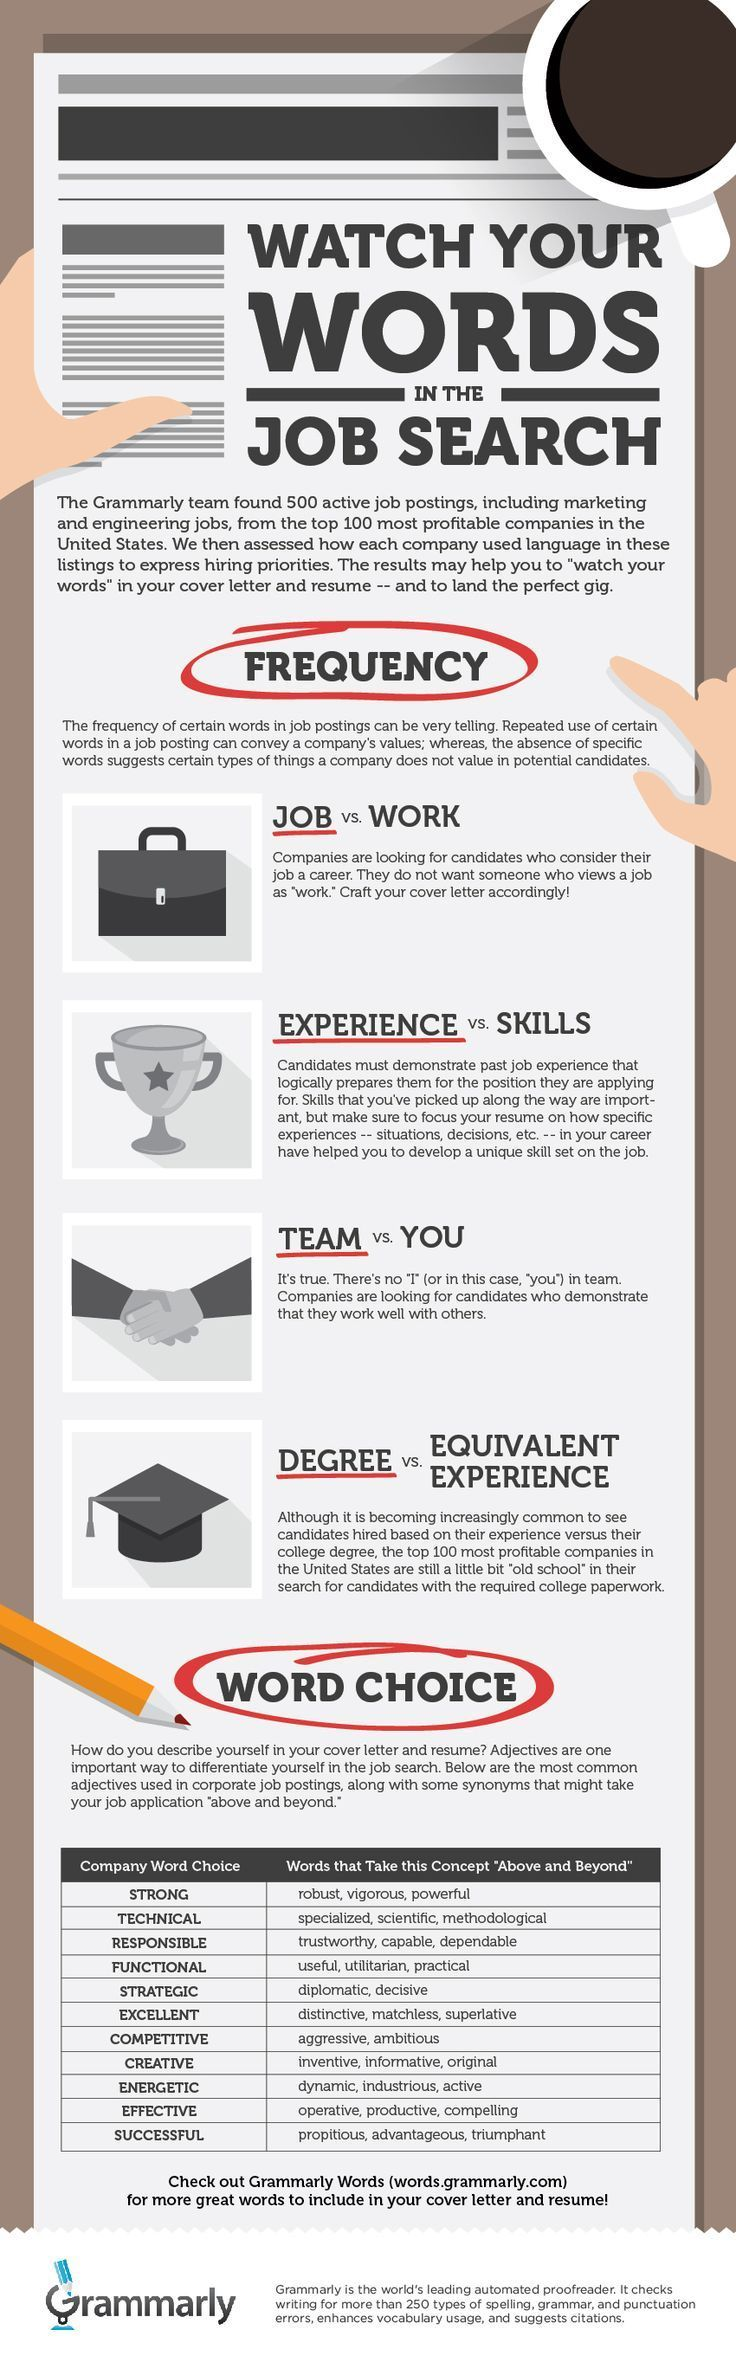 Magnificent 1 Year Experience Resume Format For Manual Testing Thin 10 Tips For A Great Resume Clean 100 Free Resume Builder Online 12 Month Budget Template Youthful 2 Inch Hexagon Template Bright2 Piece Puzzle Template 14 Best Images About CDF On Pinterest | The Muse, Career And 45